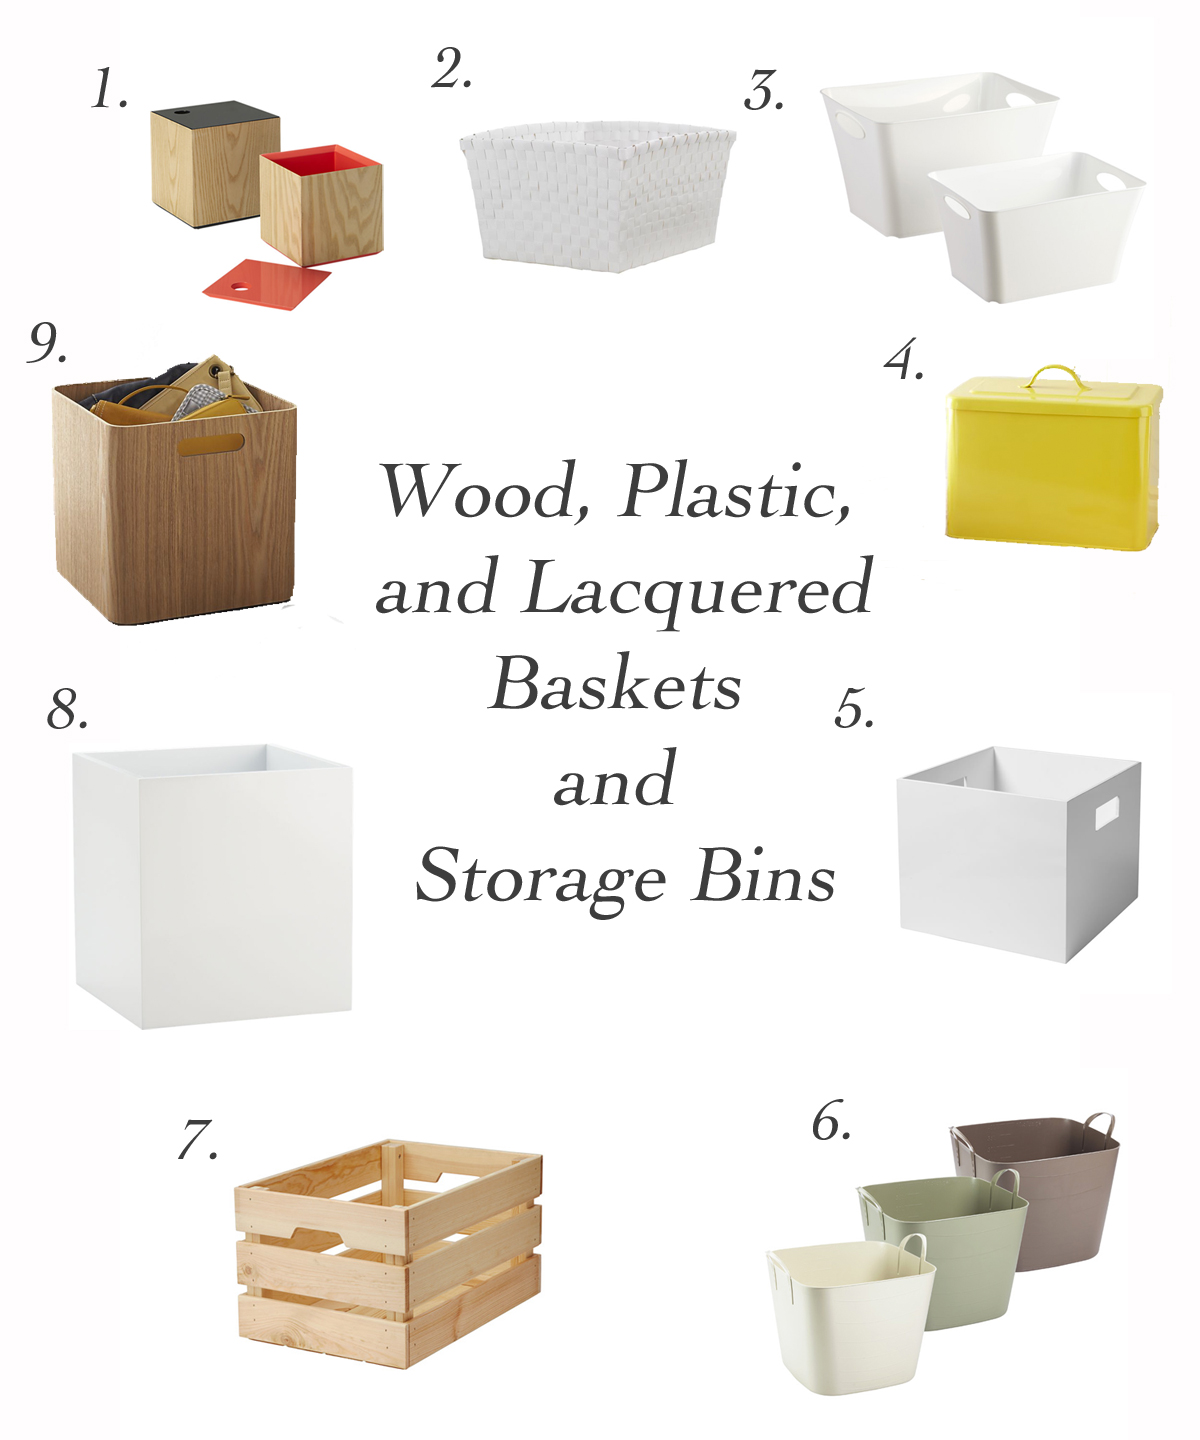 Moth Proof Baskets and Storage Bins Far Out City